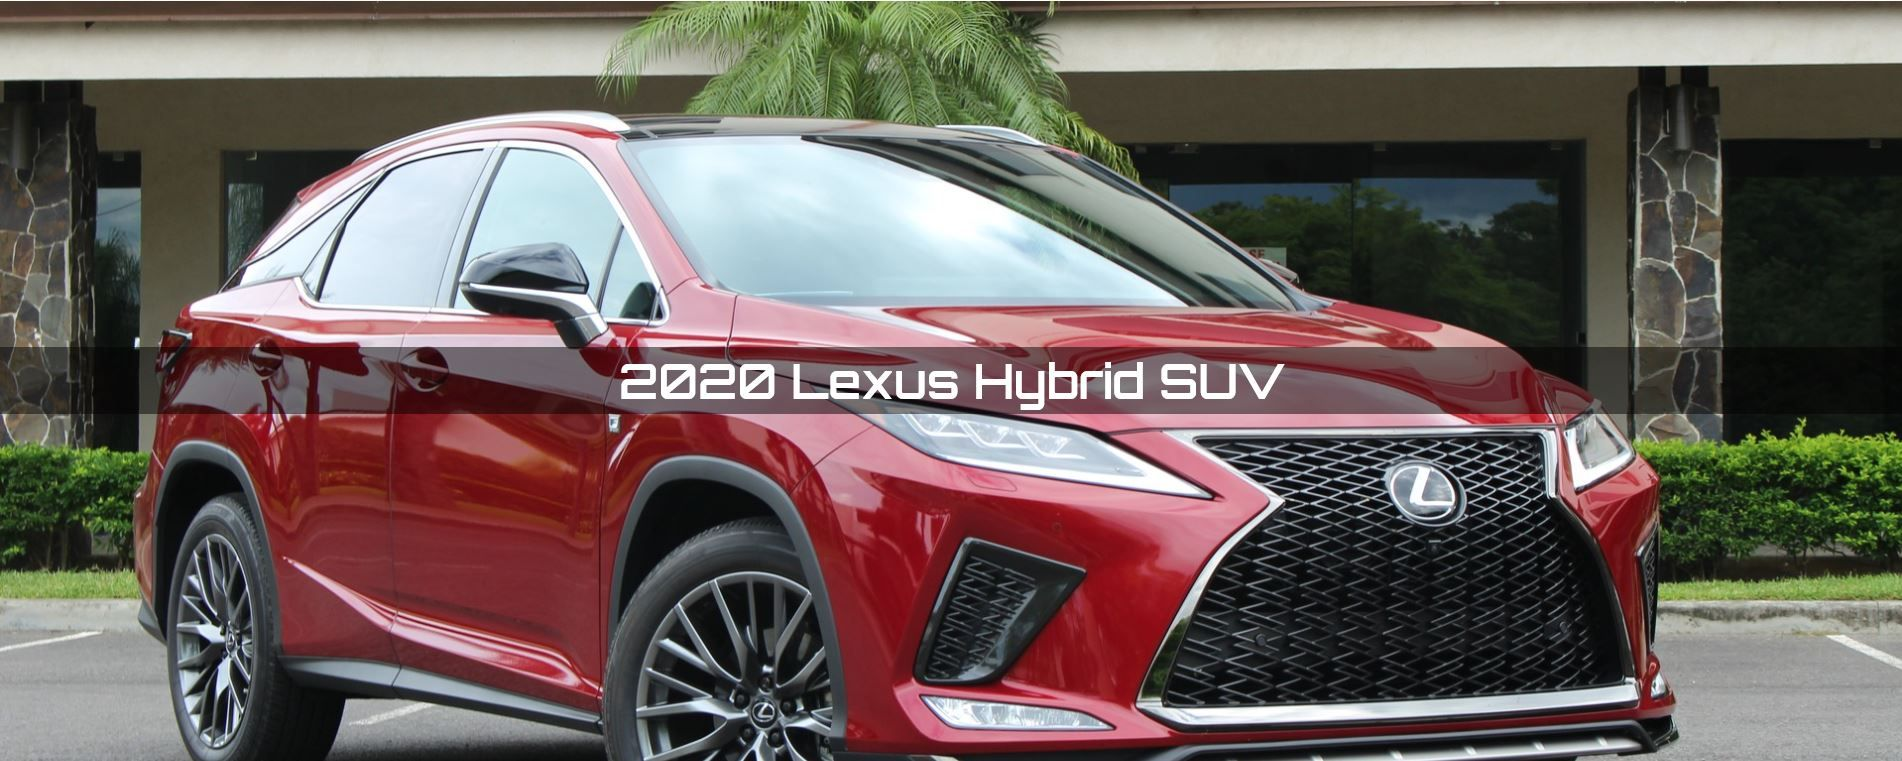 2020 Lexus Hybrid Suv Review Charging Range Performance In 2020 Suv Suv Reviews Suv Models